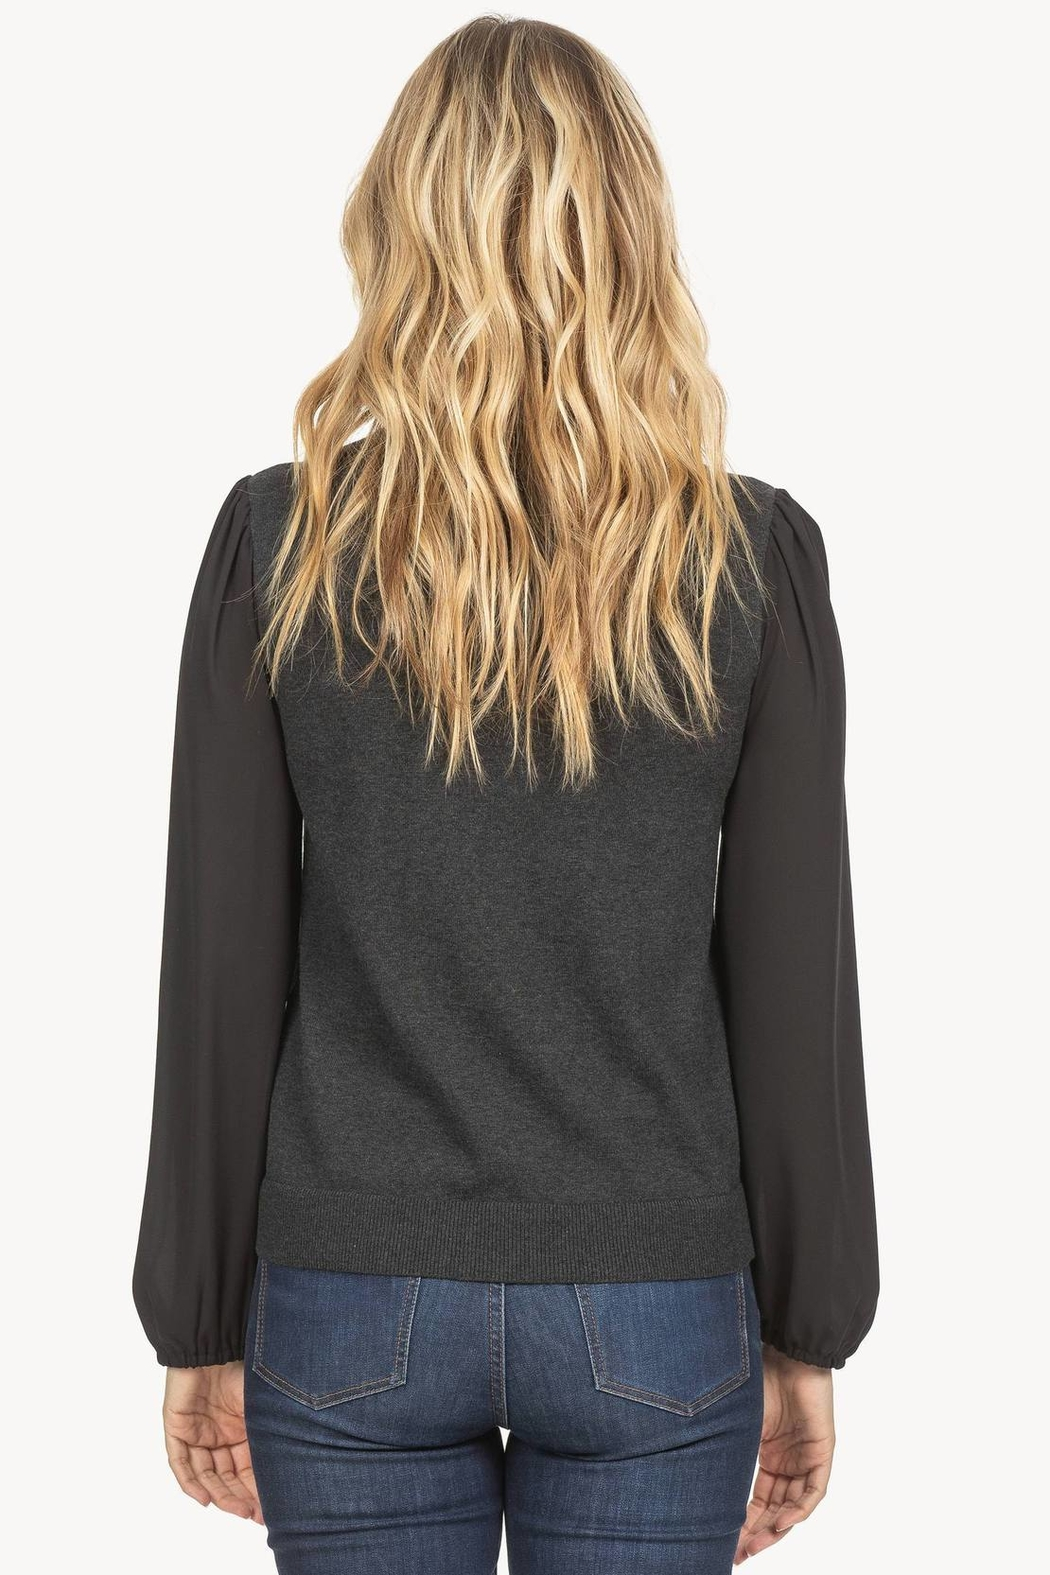 Lilla P Full Sleeve Crew Neck Sweater - Side Cropped Image